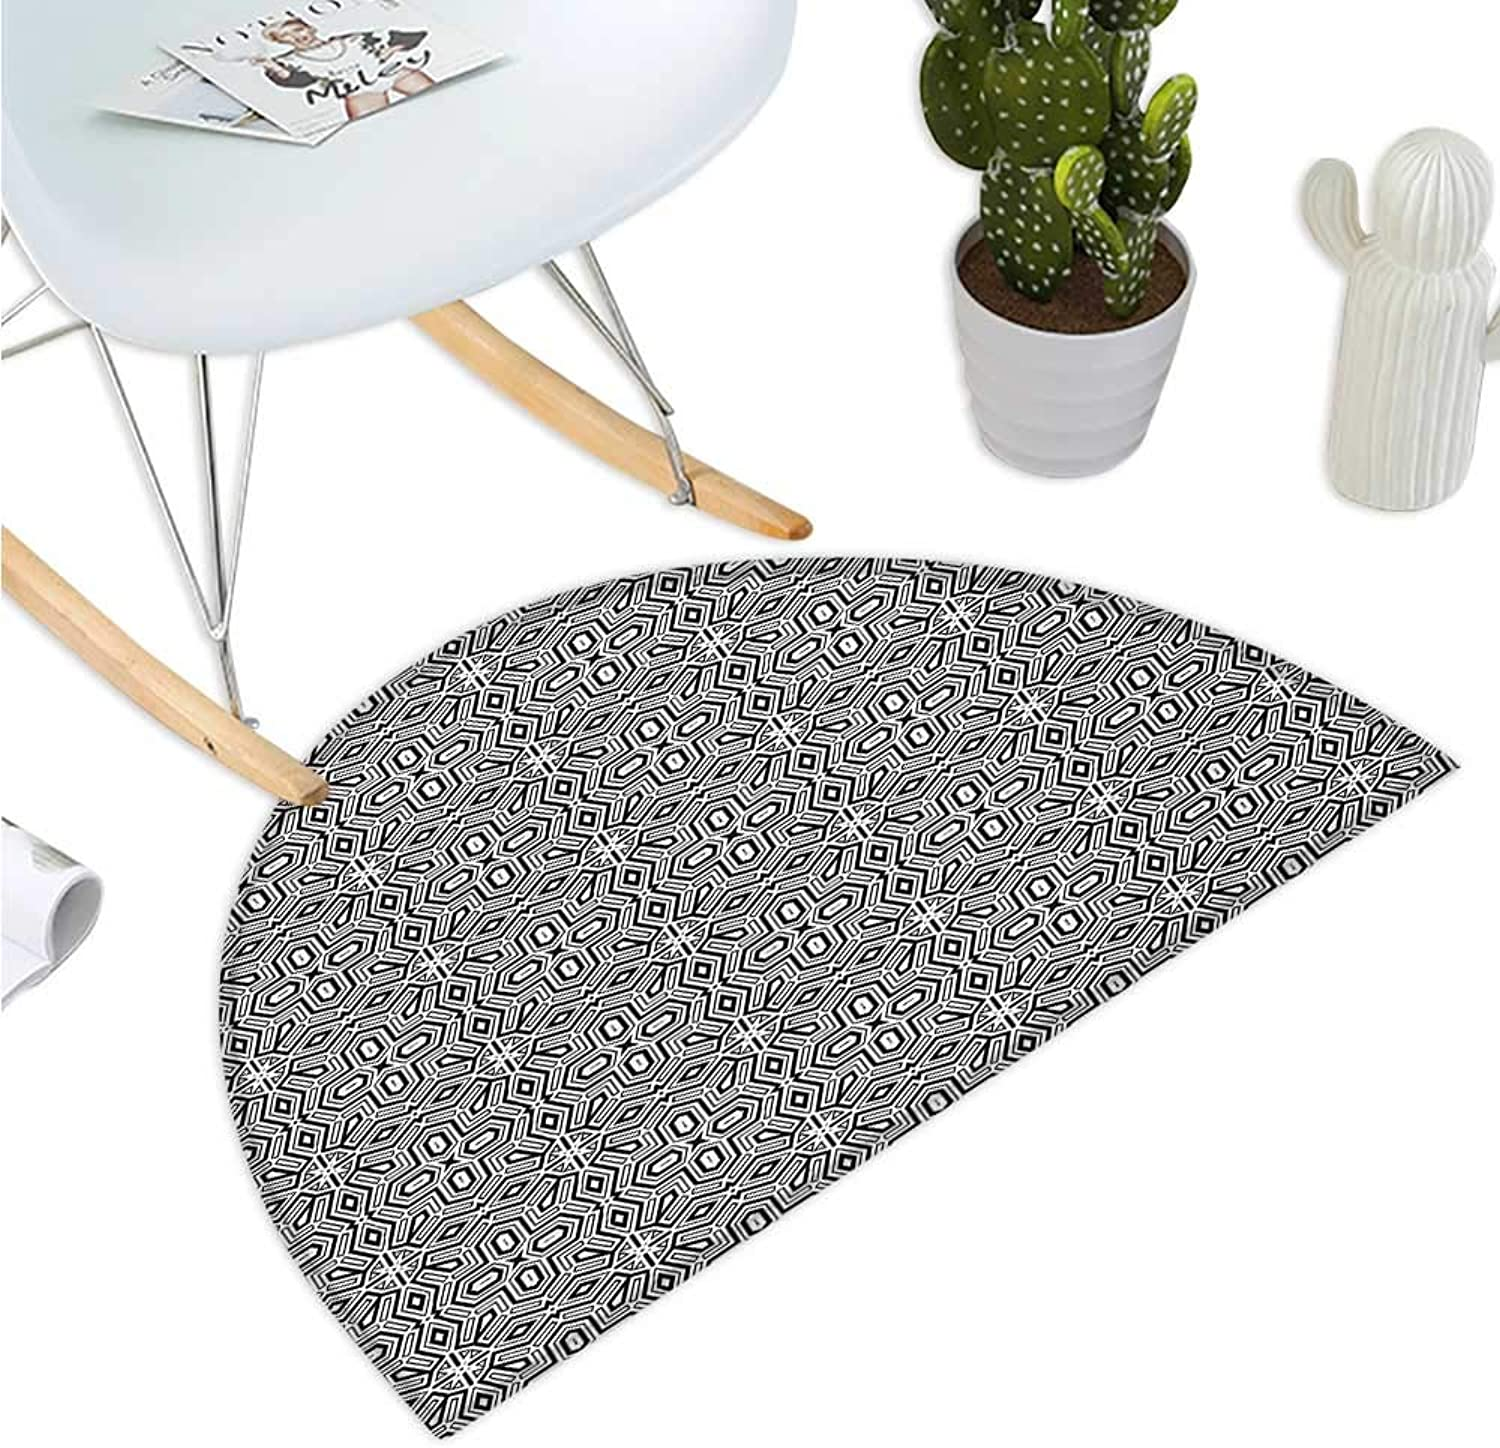 African Semicircular Cushion Ethnic Antique Design Geometrical Shapes Symmetric Graphic Chevron Modern Display Entry Door Mat H 39.3  xD 59  Black White